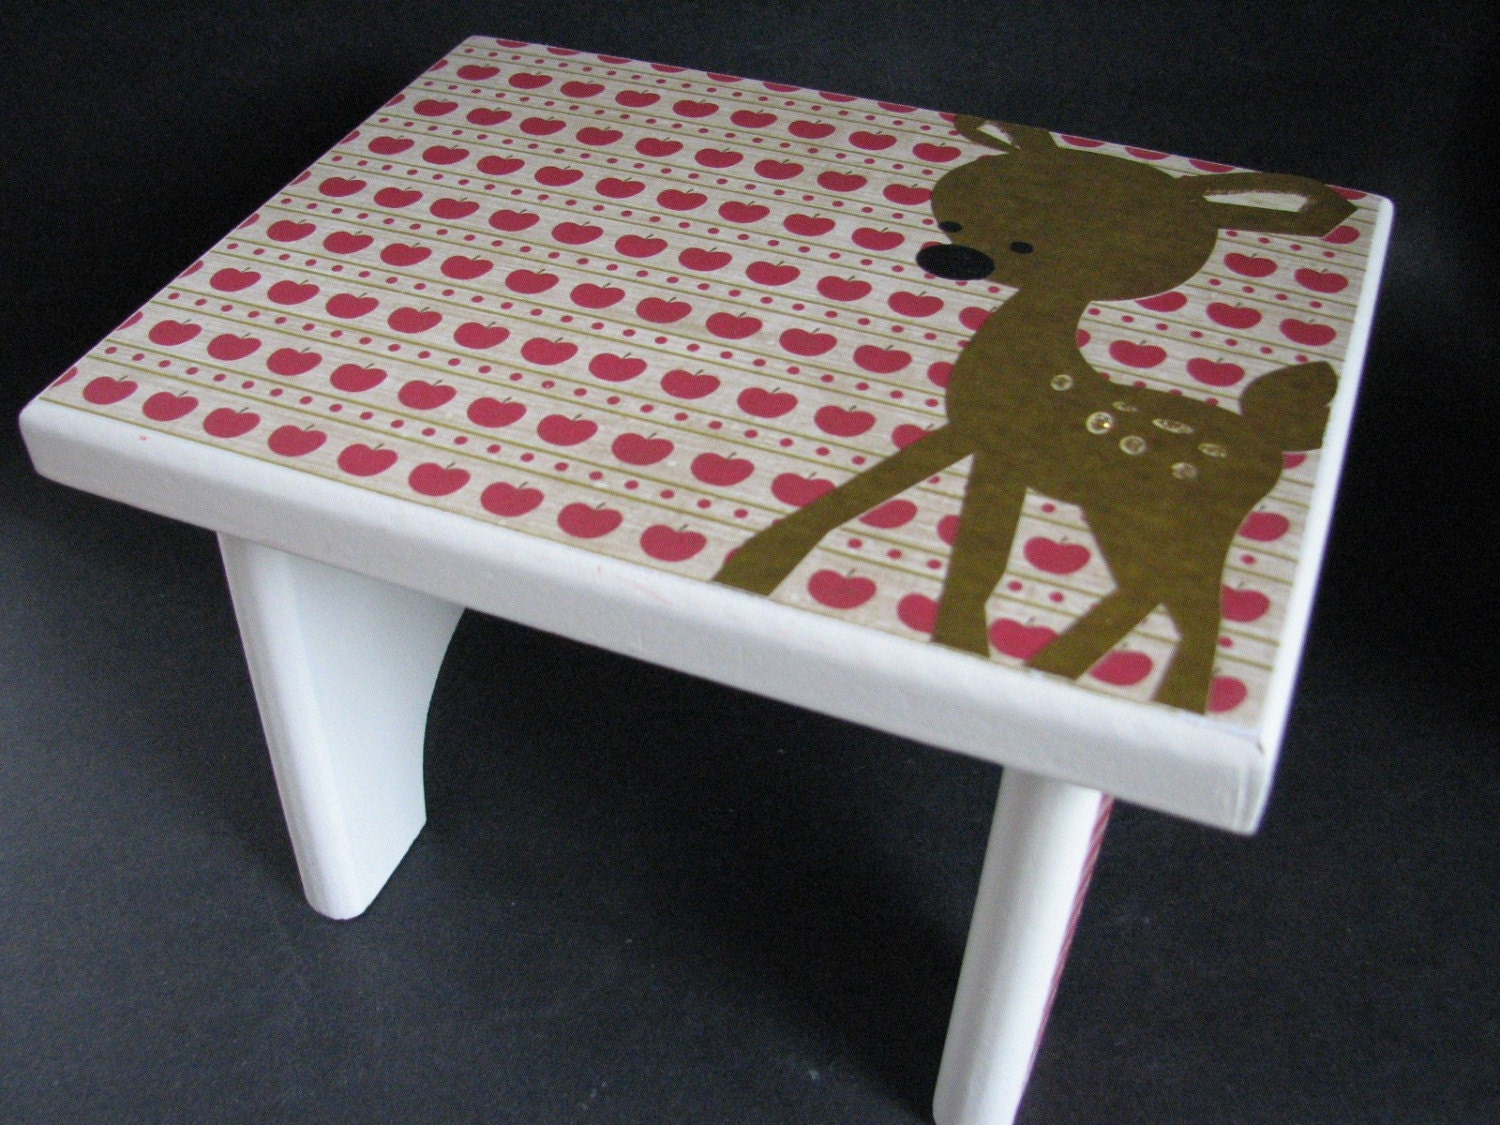 Decorative Mini Step Stool Bench Oh Dear Deer. Living Room Shades. Rent Wedding Decorations. Decorative Well Covers. Where Can I Buy Cheap Decorative Pillows. Rooms To Go Baby. Sitting Room Design. Used Living Room Sets. Party Rooms For Rent